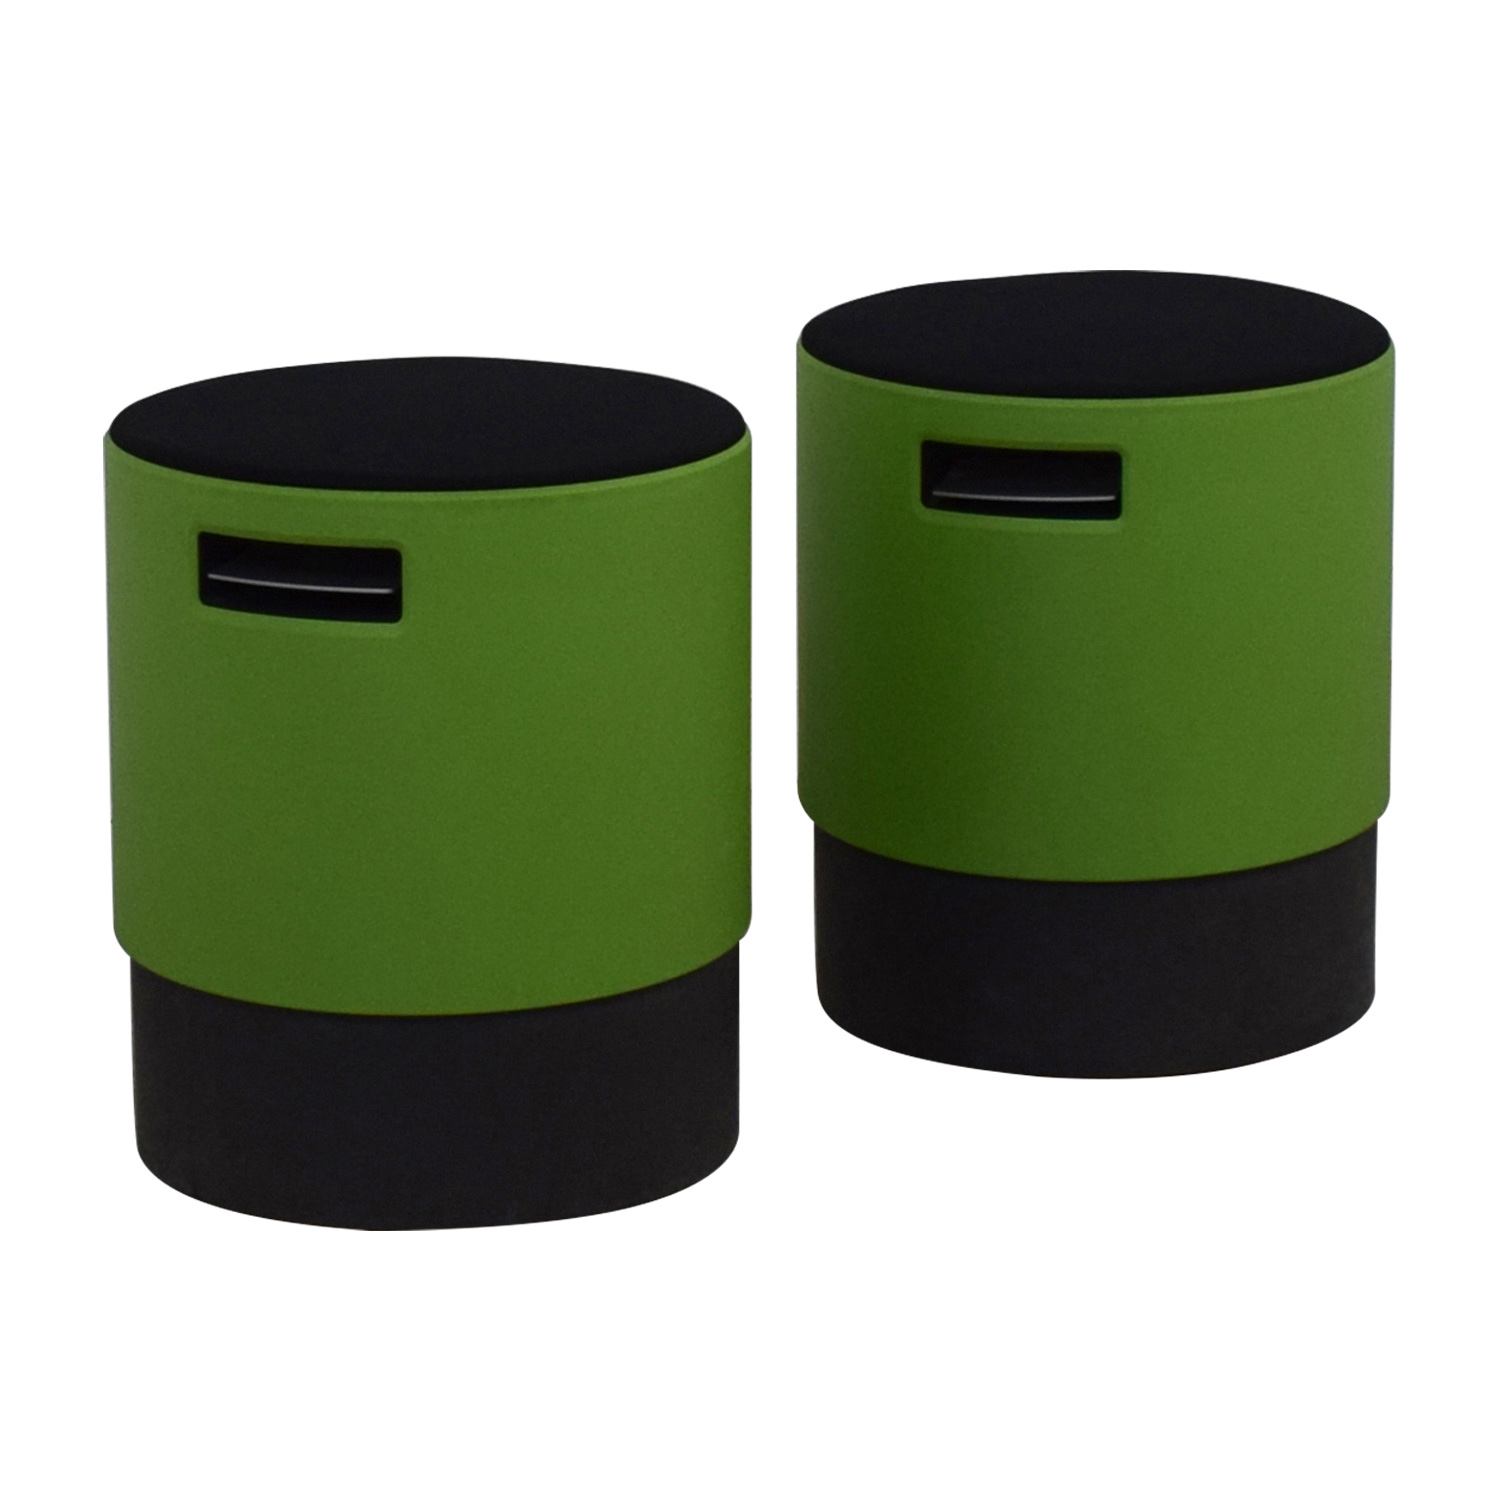 Steelcase Turnstone Buoy Green And Black Adjustable Office Chairs Nyc Jpg  1500x1500 Steelcase Buoy Chair